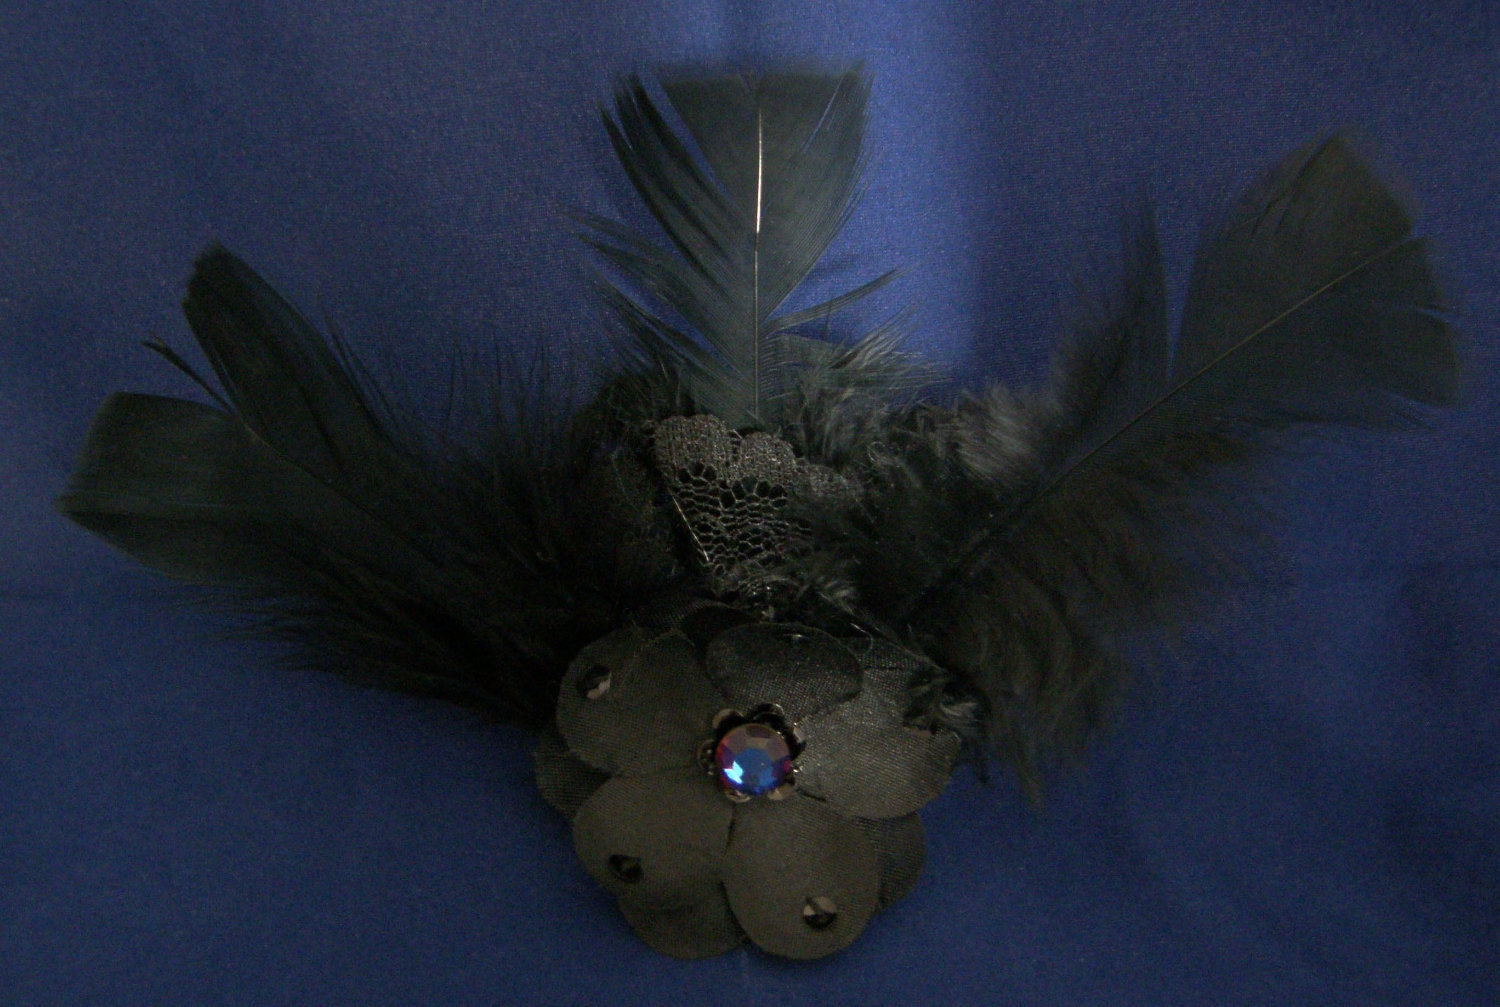 black floral barrette with feathers, lace, and iridescent stone